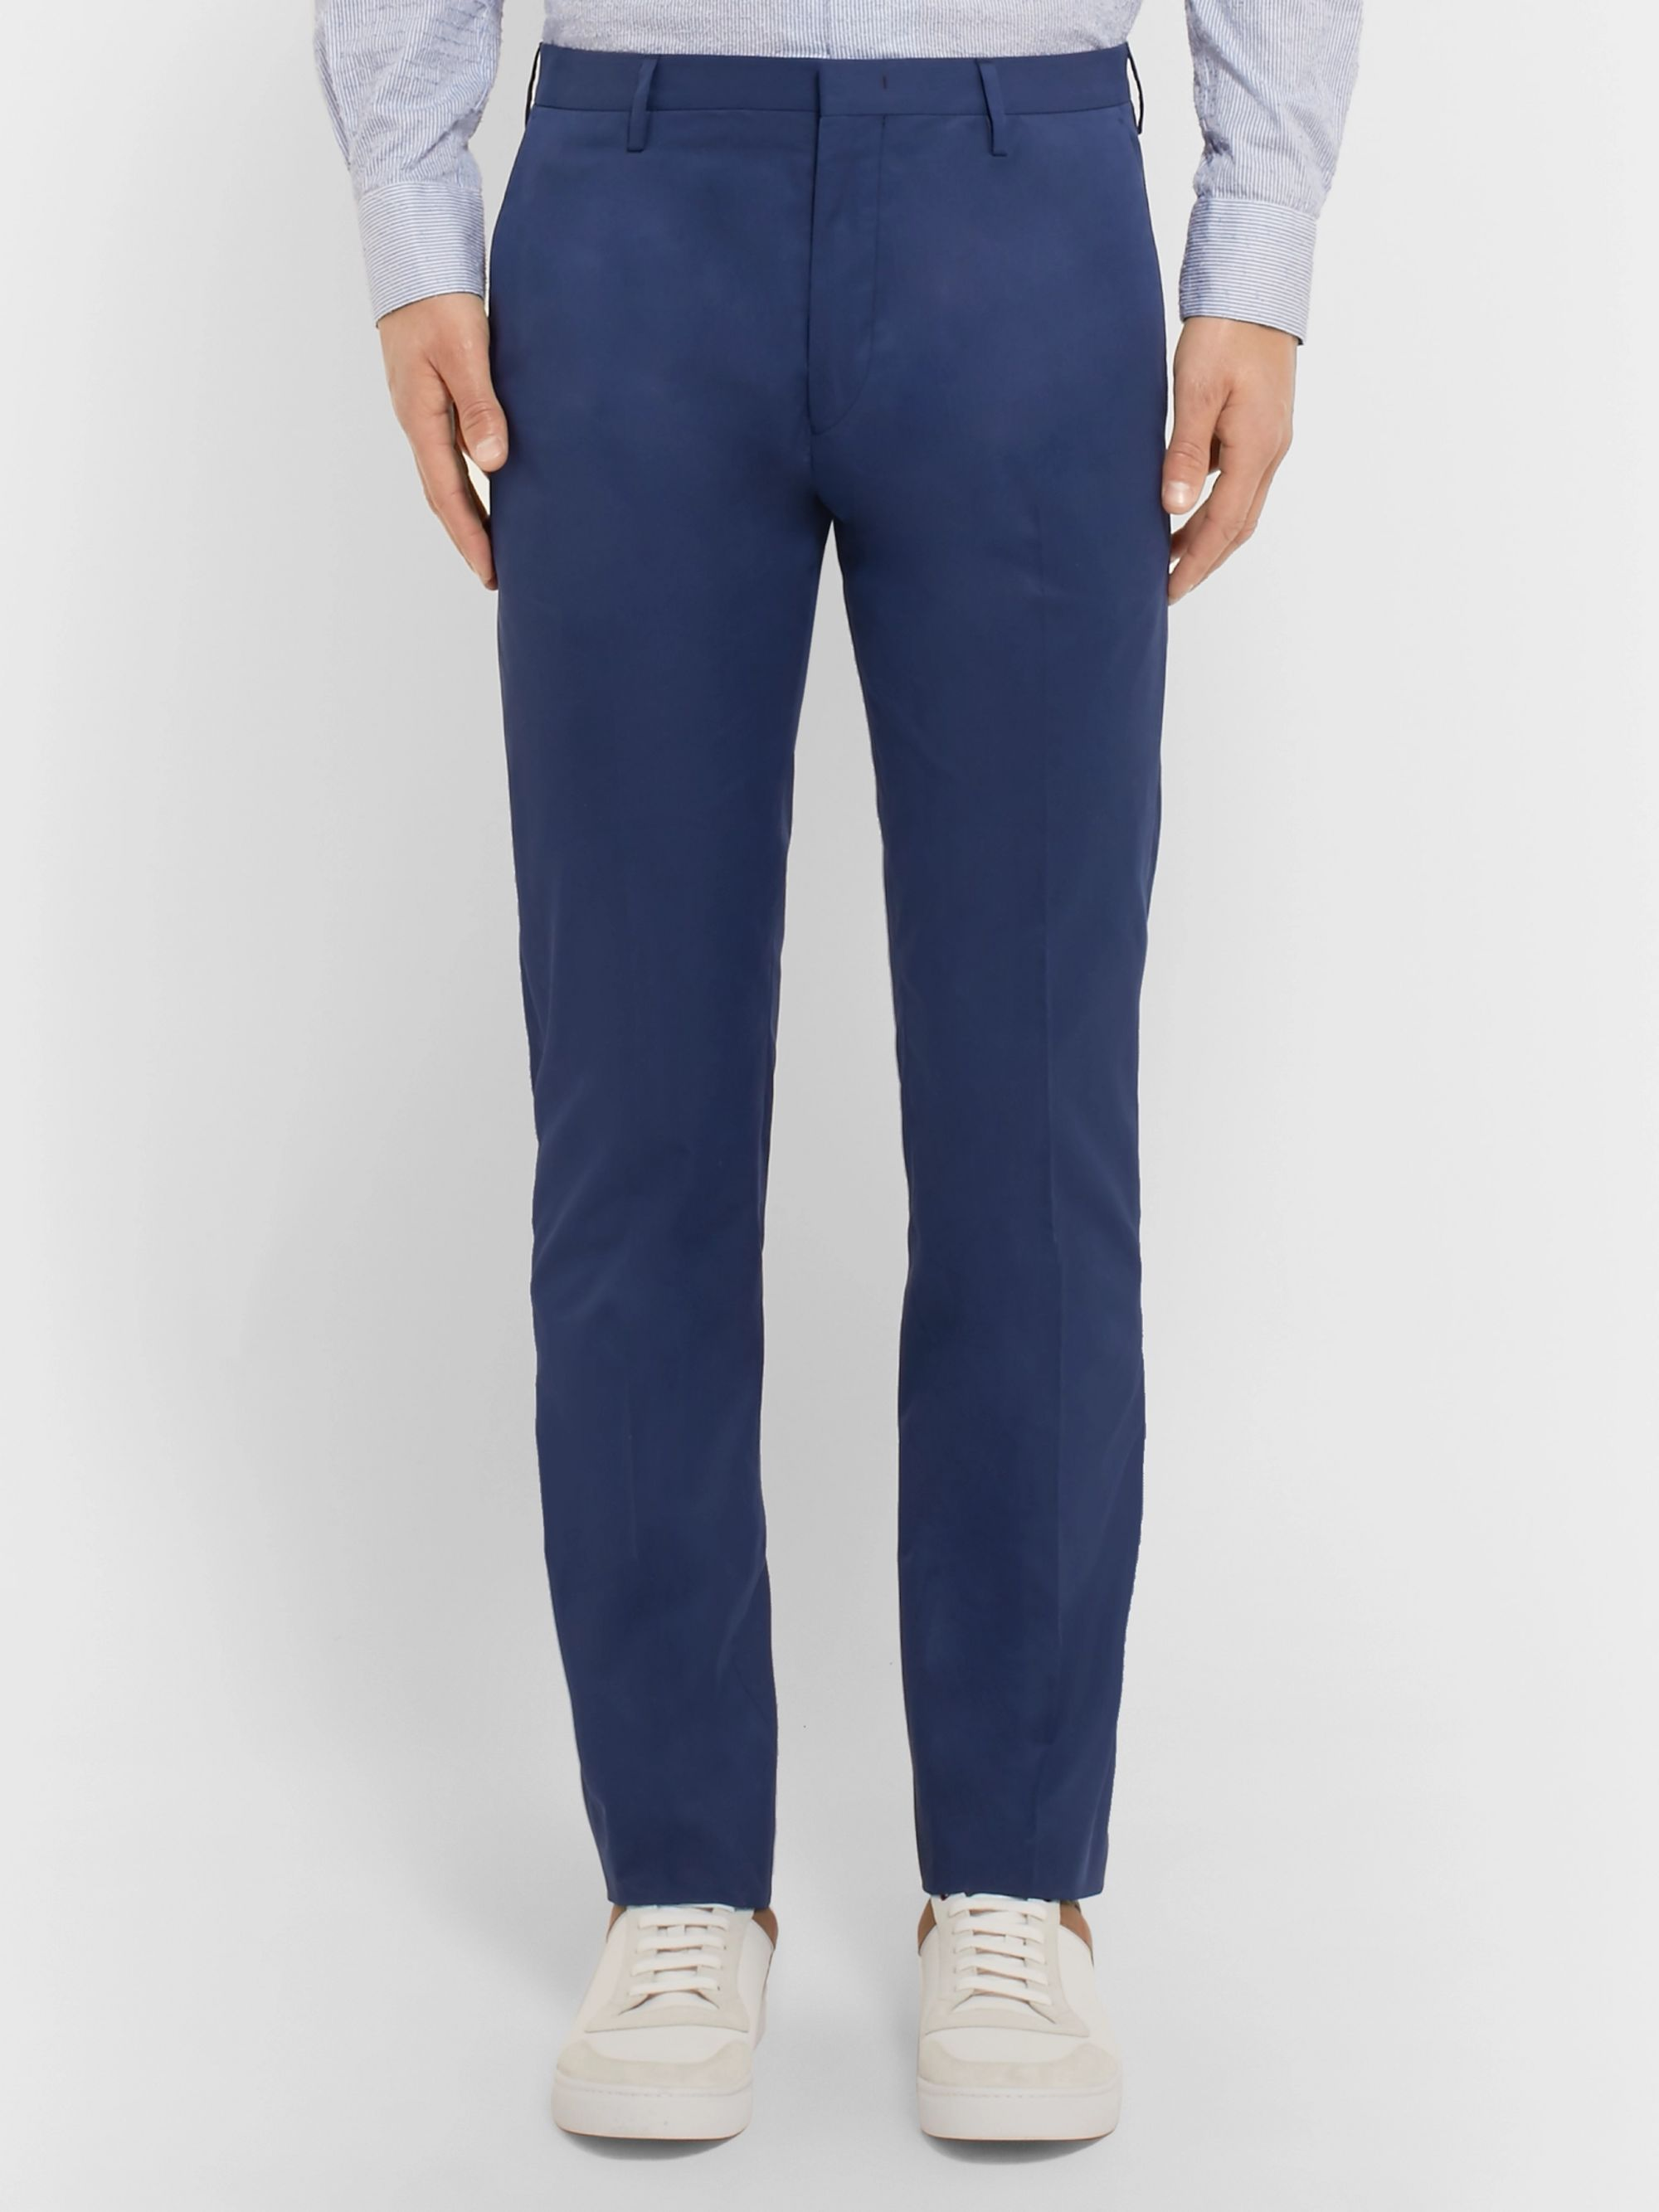 Paul Smith Royal-Blue Soho Slim-Fit Cotton Trousers